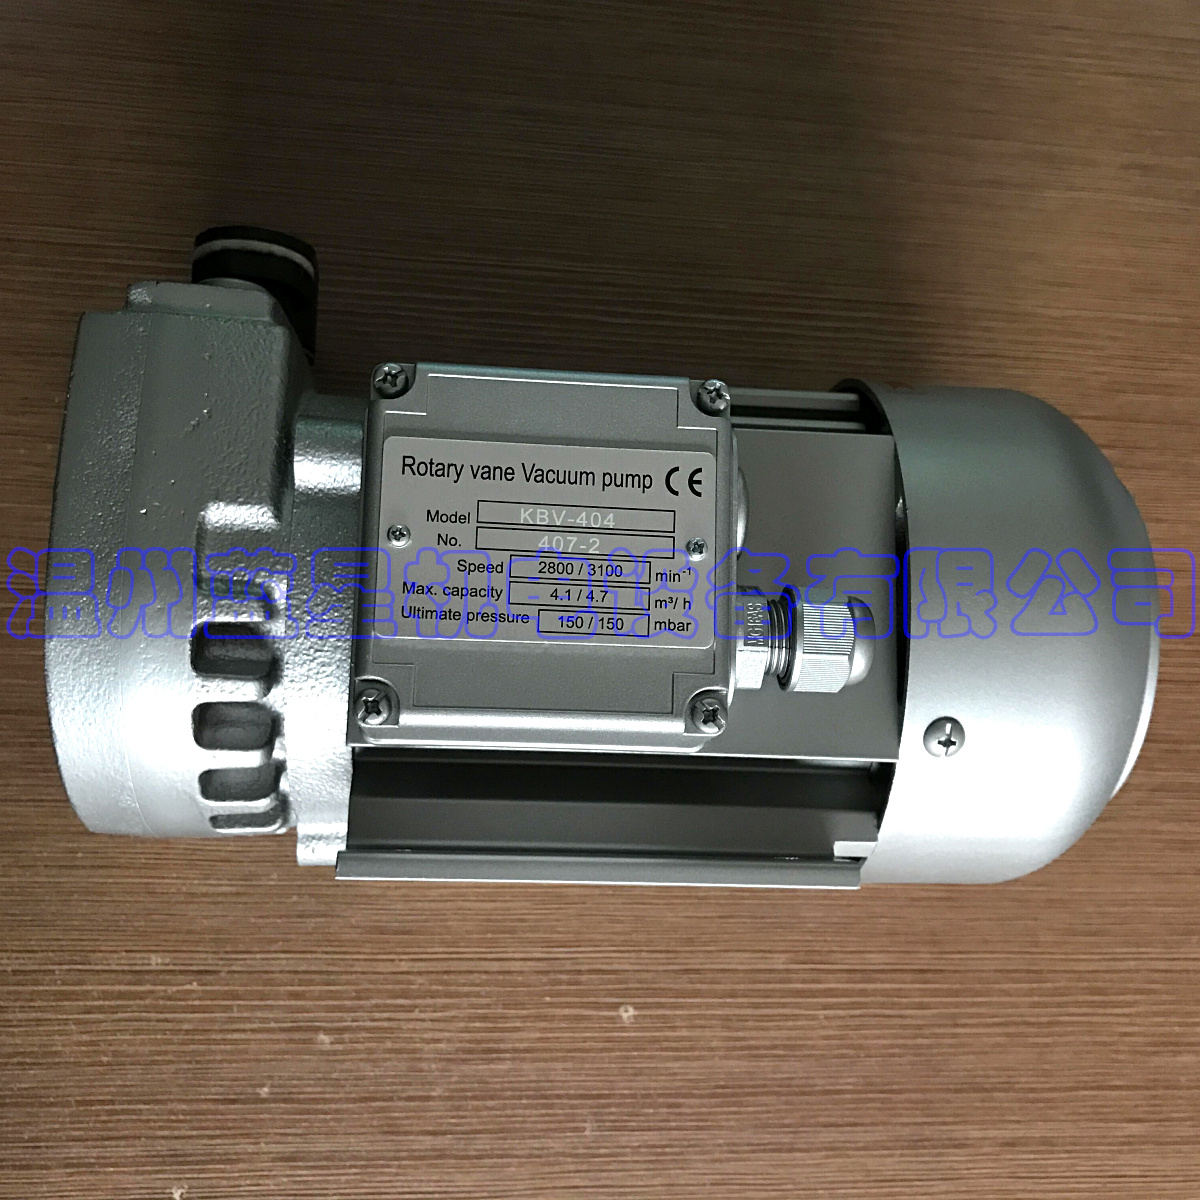 KLEE oil-free vacuum pump Kbv-404 can replace  VT4.4 Max flow: 4.1m3/h, max  vacuum 150mbar, voltage AC380V Three-phase power manka care 110v 220v ac 50l min 165w small electric piston vacuum pump silent pumps oil less oil free compressing pump